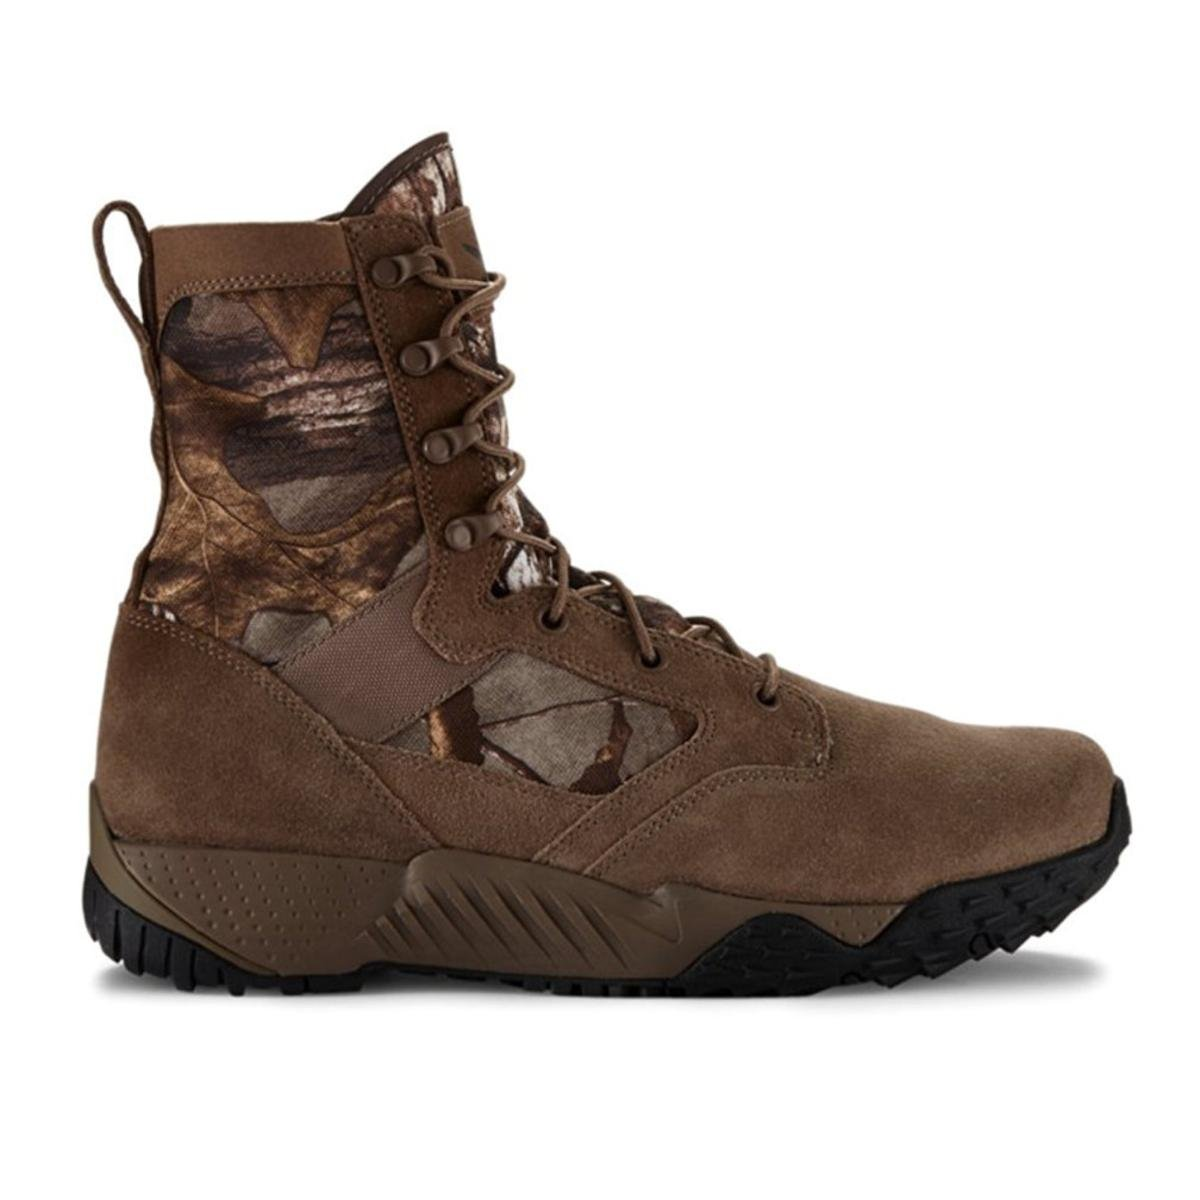 Under Armour UA Jungle Rat Boot - Men's Realtree AP-Xtra / Uniform / Timber 9